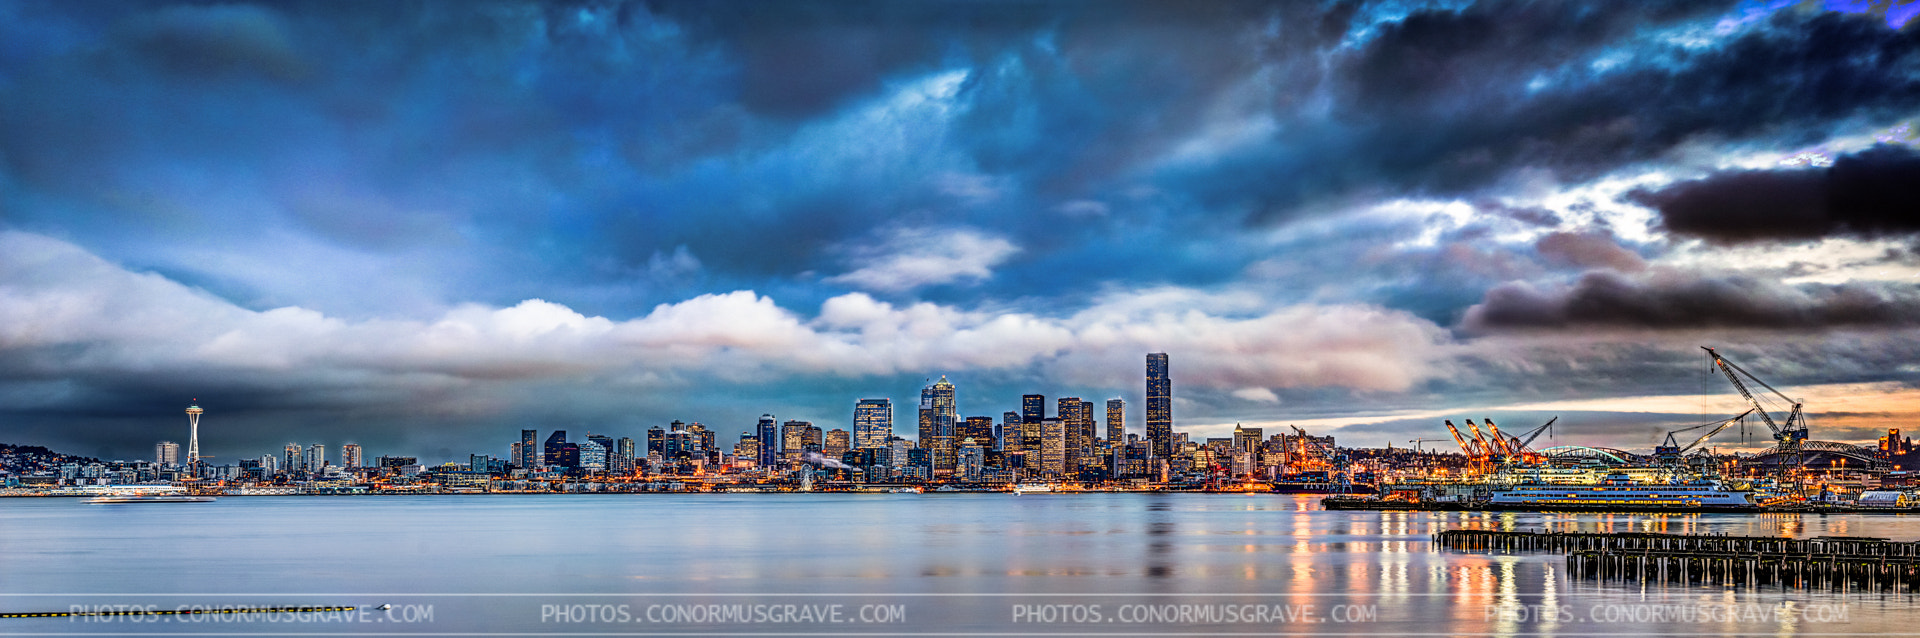 Photograph Seattle Blue Hour Panorama by Conor Musgrave on 500px